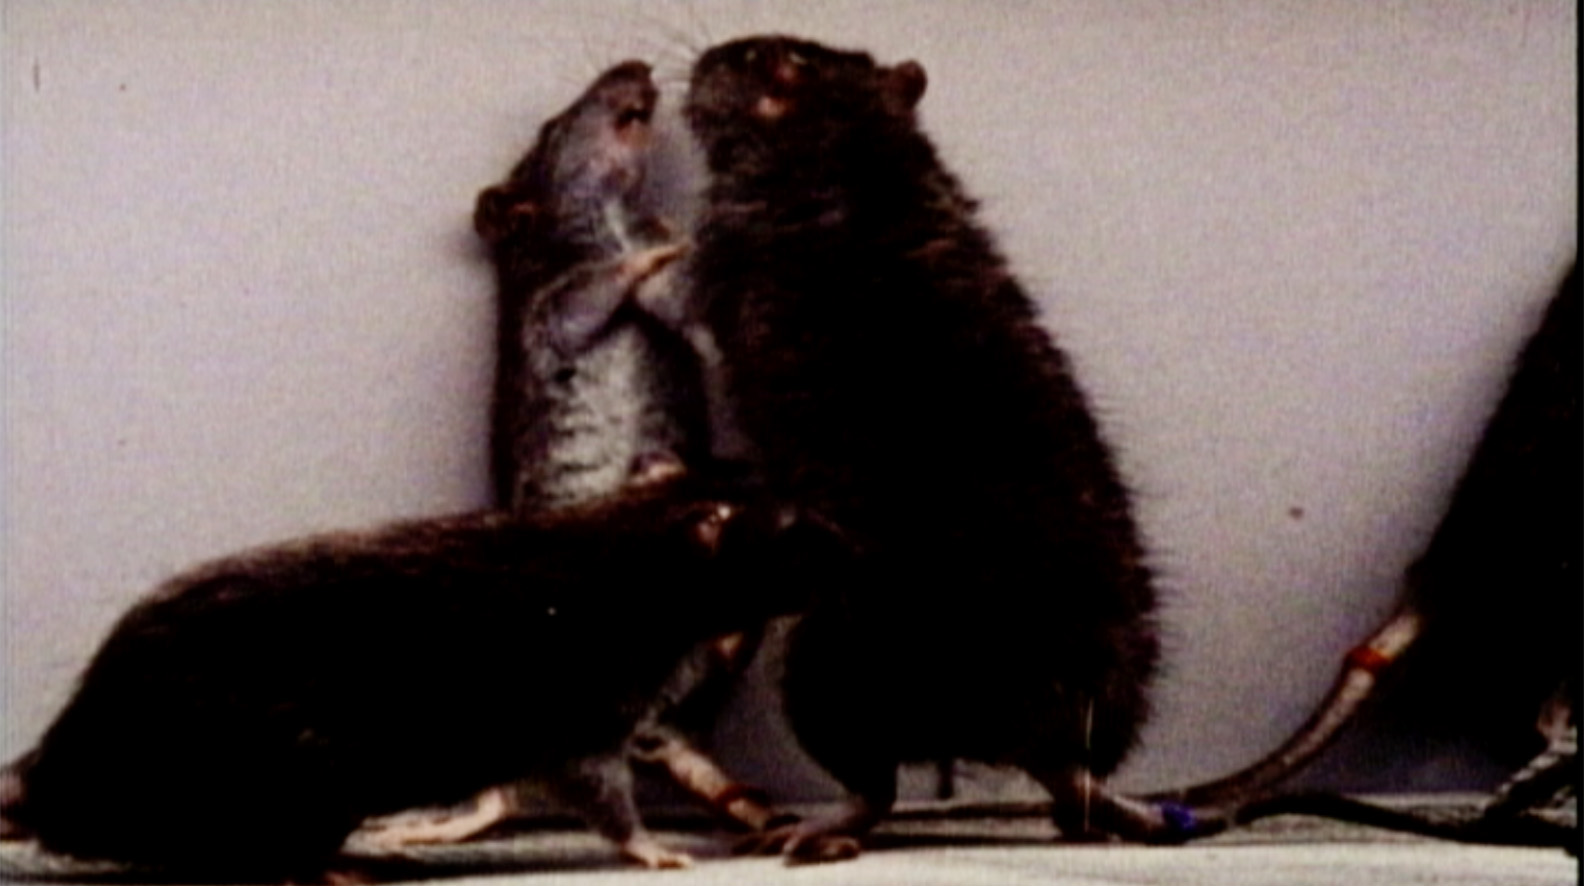 RATS Fighting1 copy.jpg